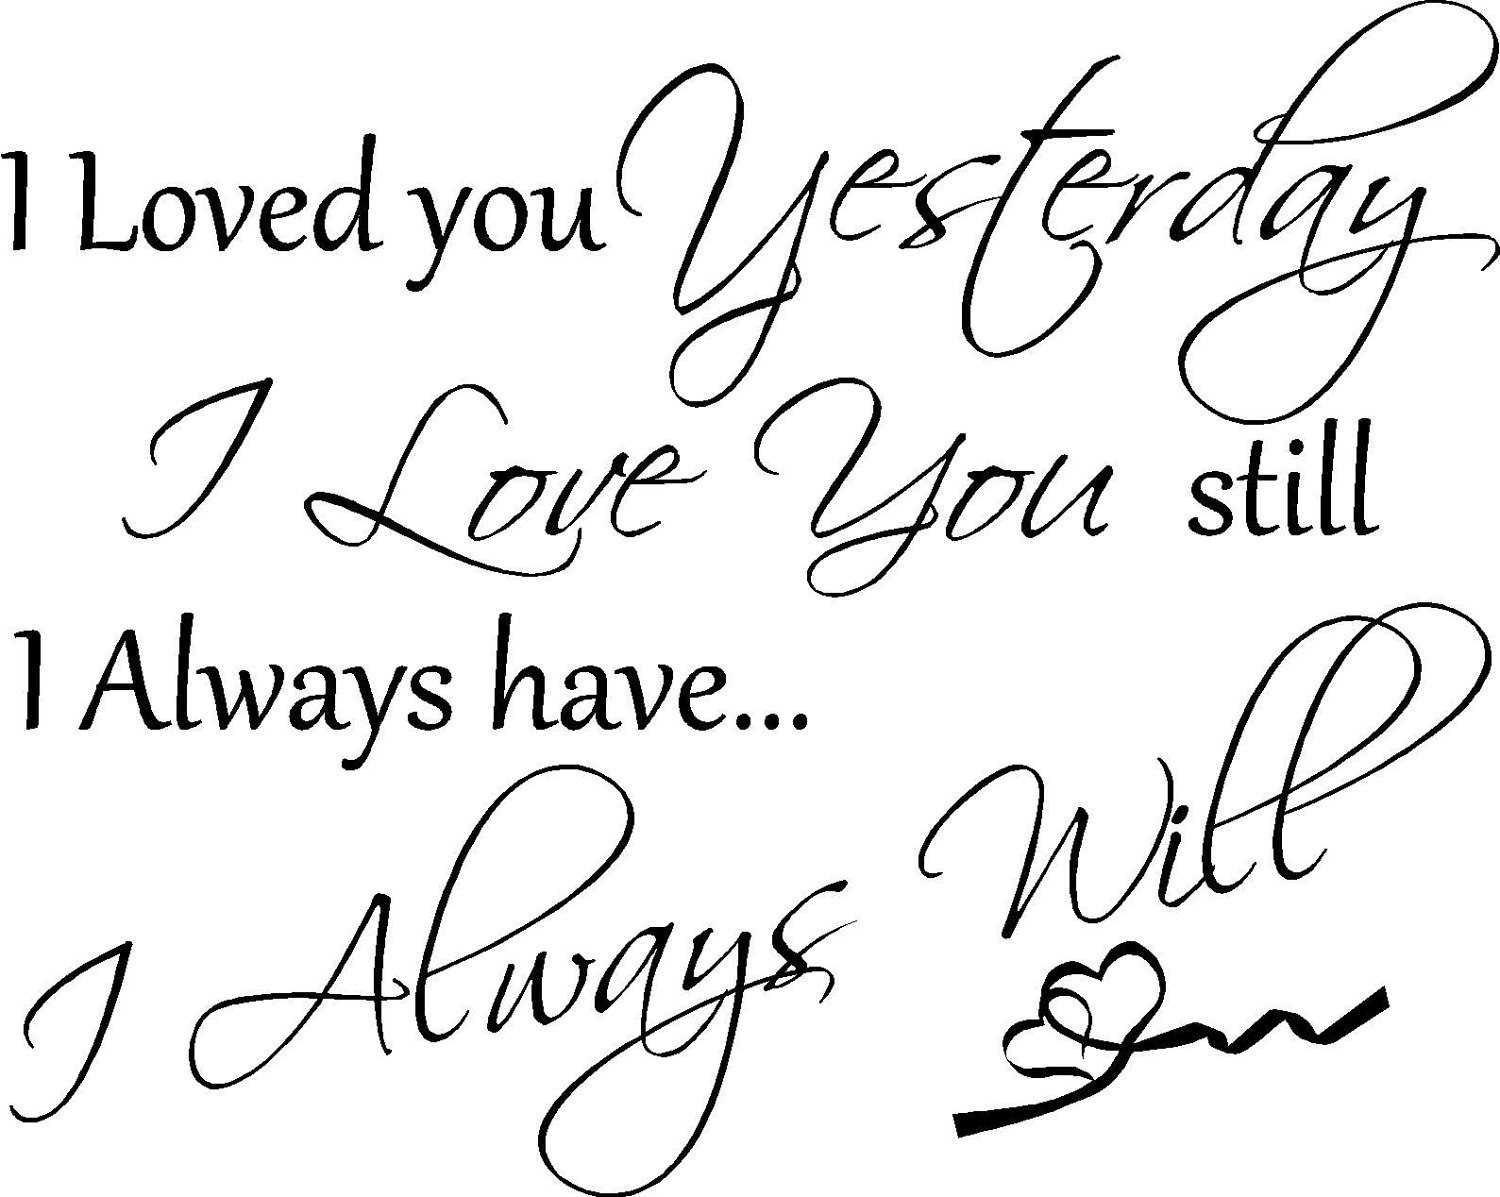 05f16f9e6684590877c3be3ed90856d3_28-collection-of-coloring-pages-with-love-quotes-high-quality-_1500-1197